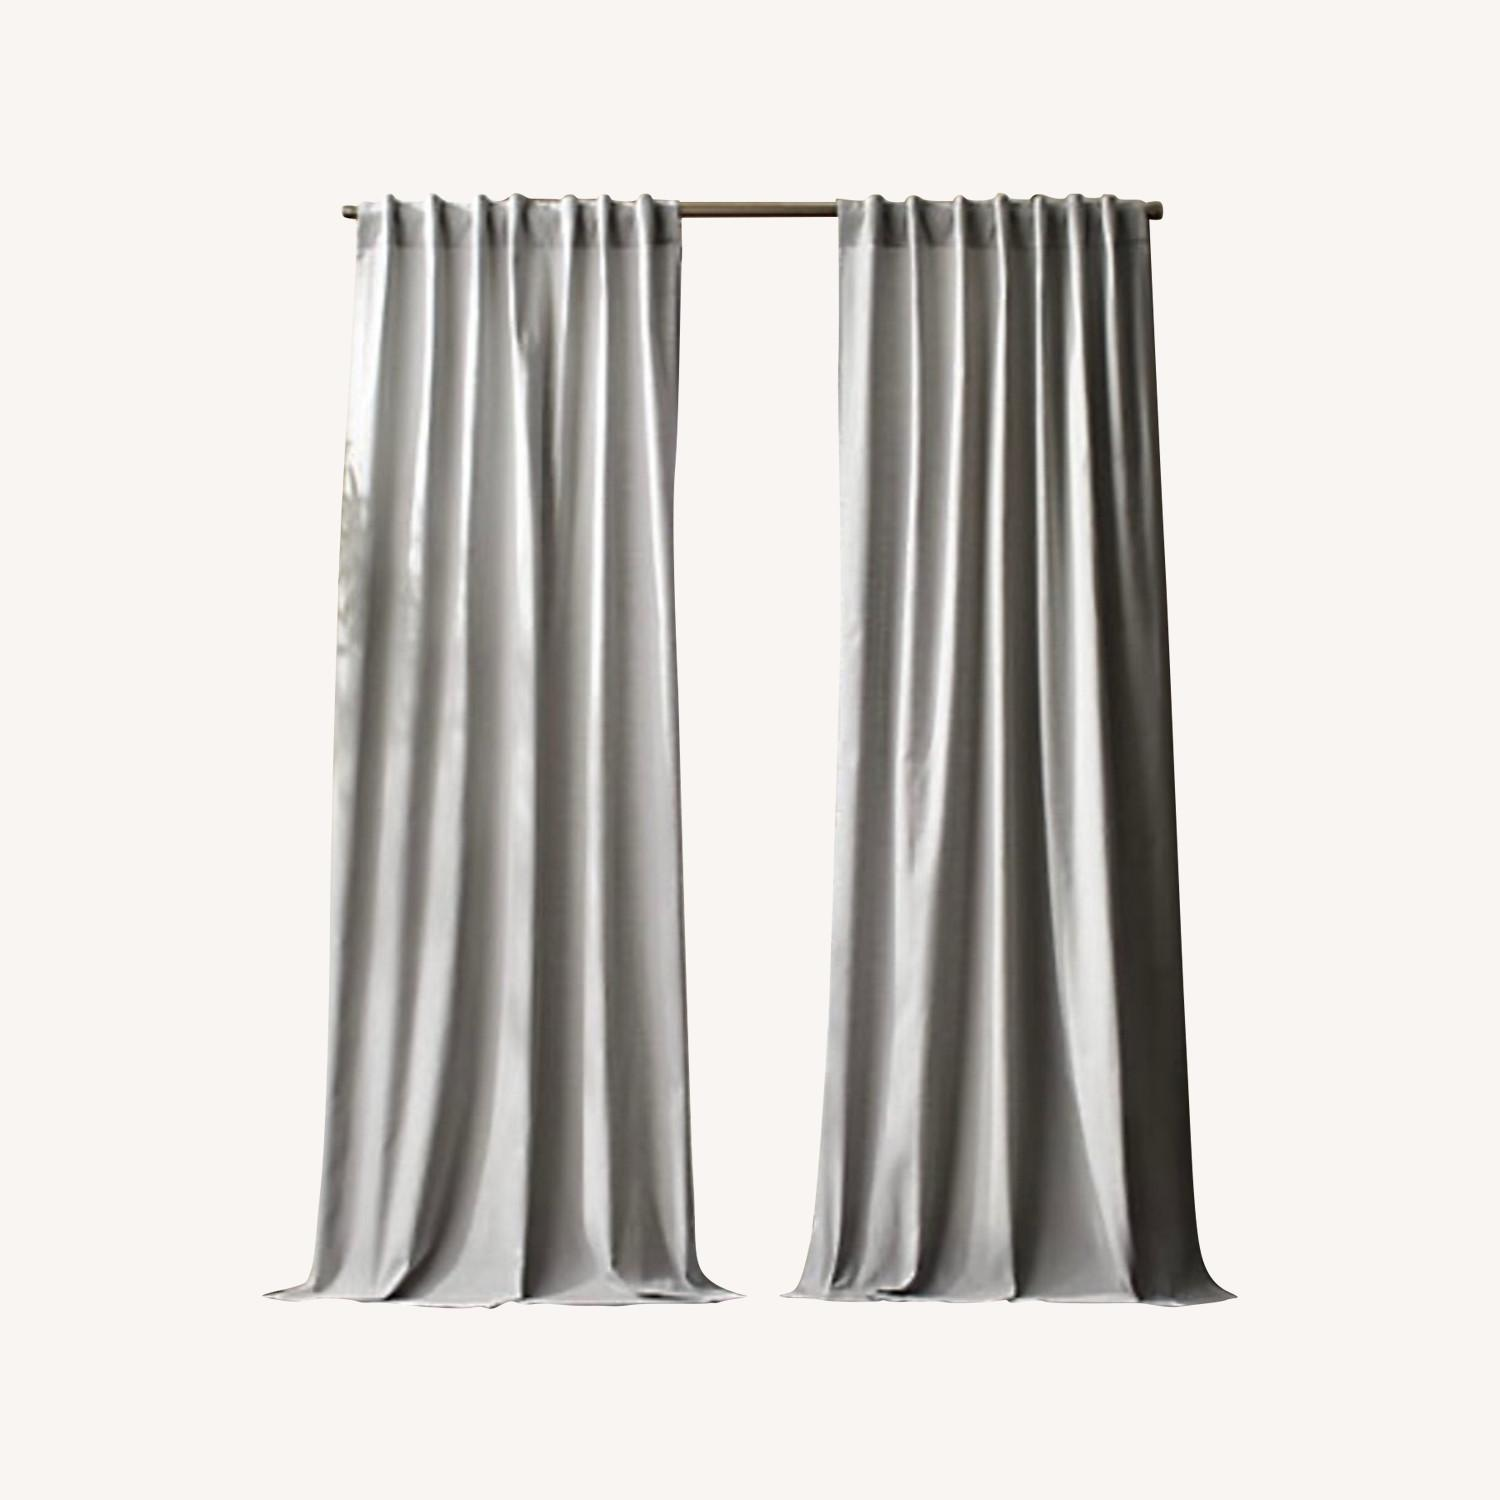 cb2 ceiling pair of curtains and rod